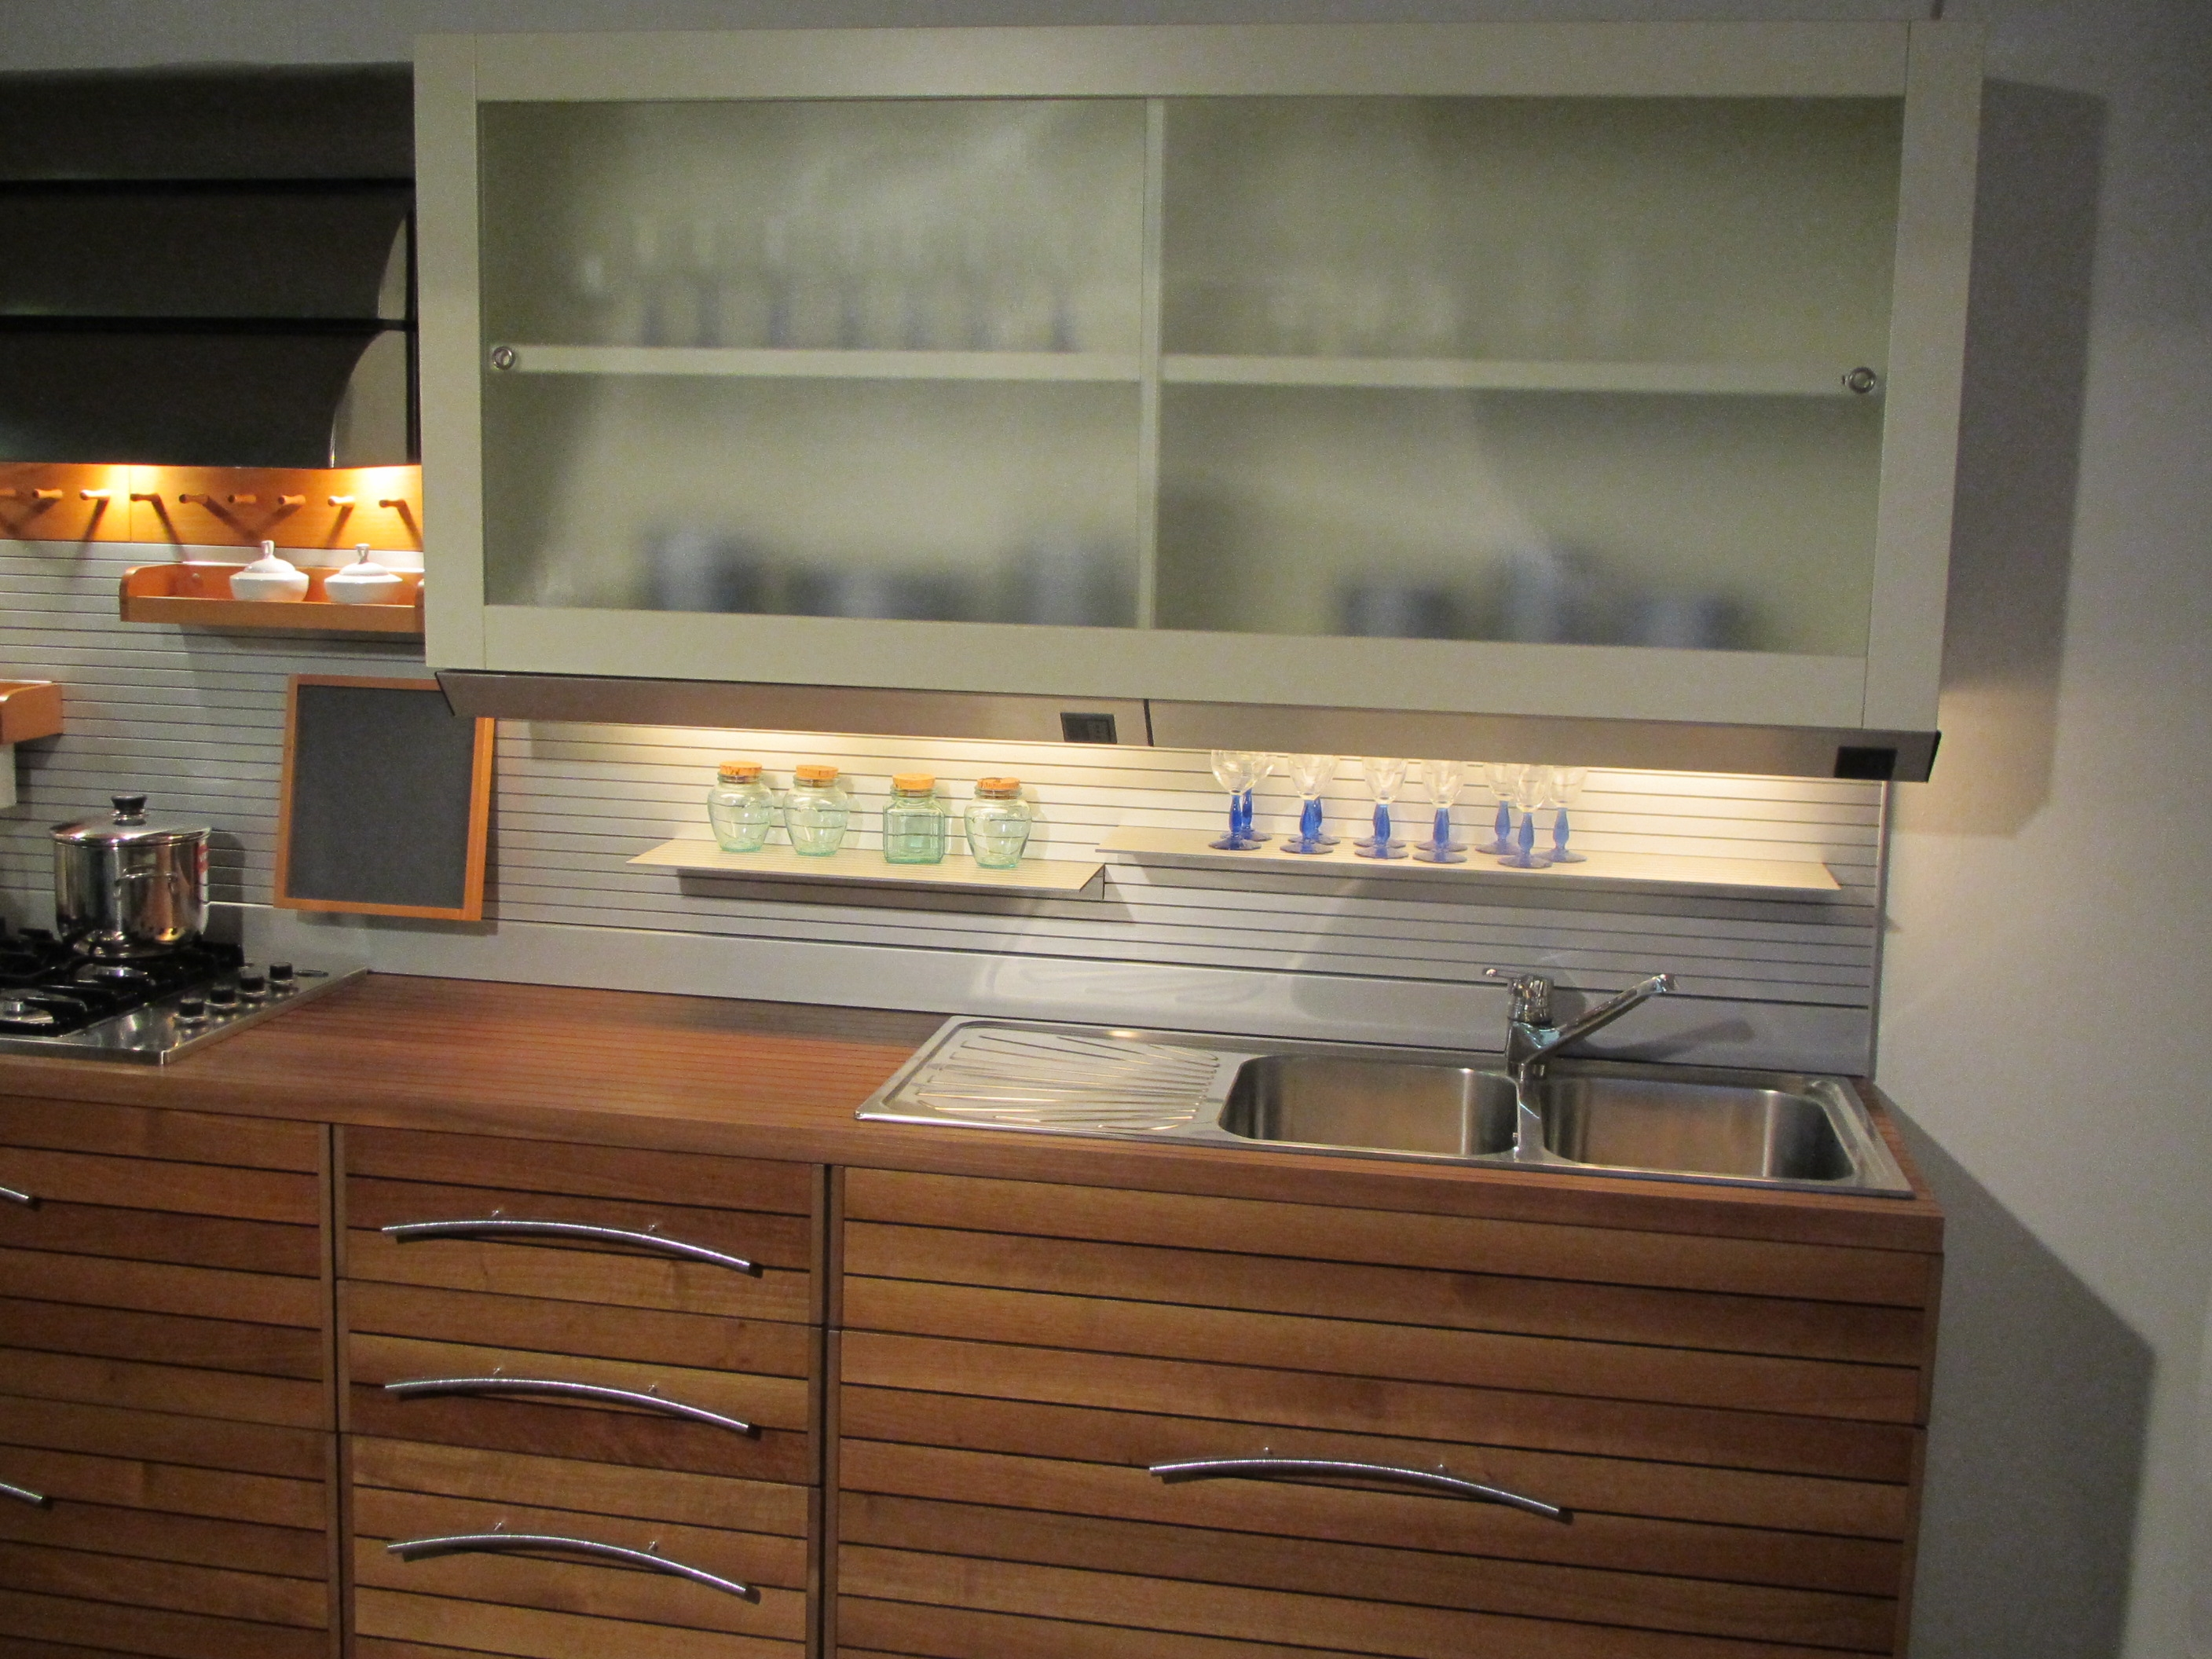 Angolo Cottura Dwg : Cucine ad angolo dwg beautiful september with cucine ad angolo